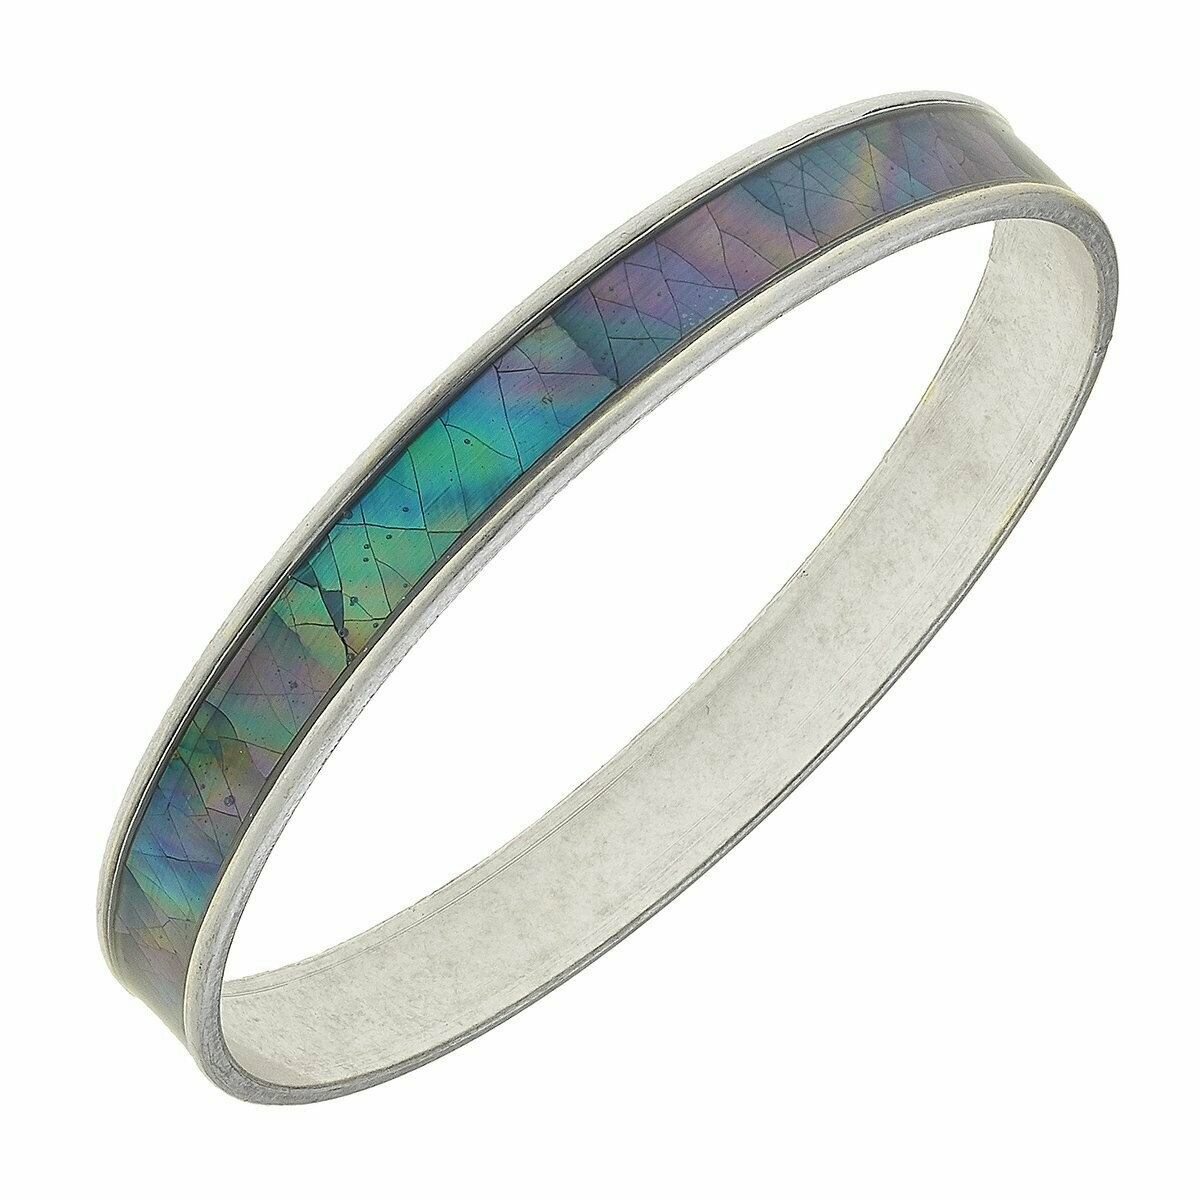 Paola Bangle Bracelet in Grey Mother of Pearl Shell